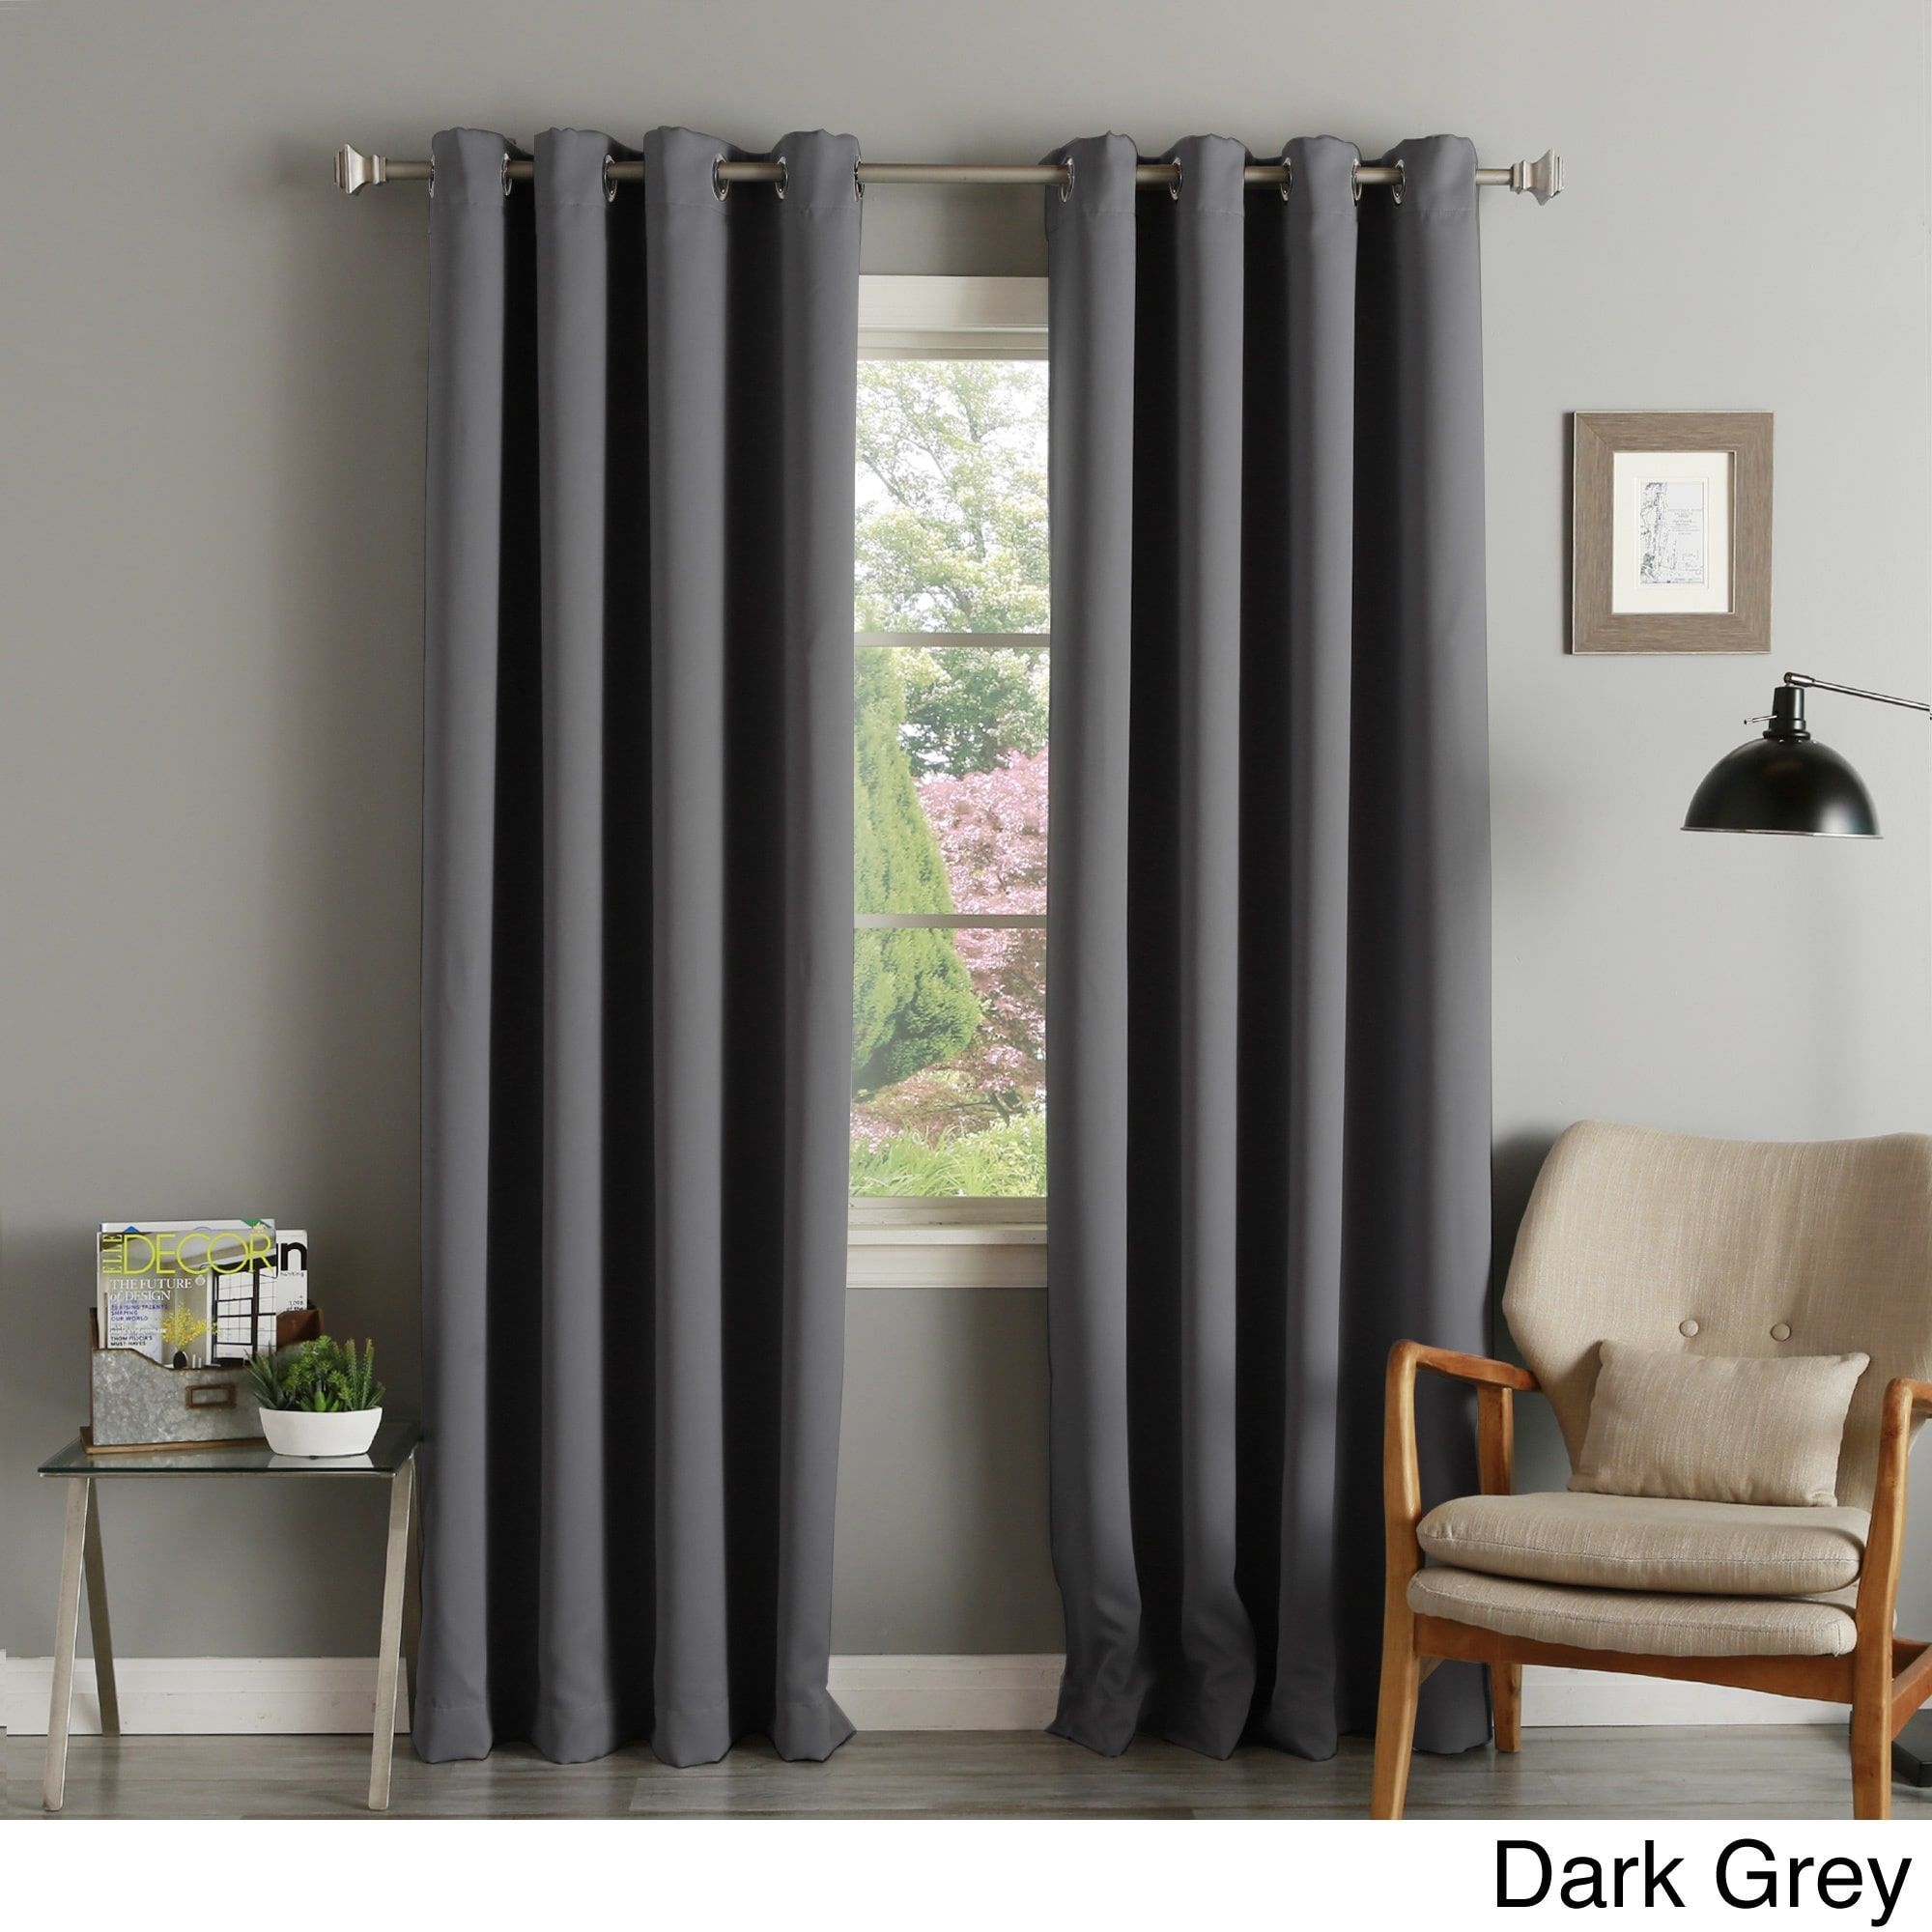 edward curtains lush x pin decor blackout white polyester pair pattern curtain inch black moroccan size grey panel and geometric